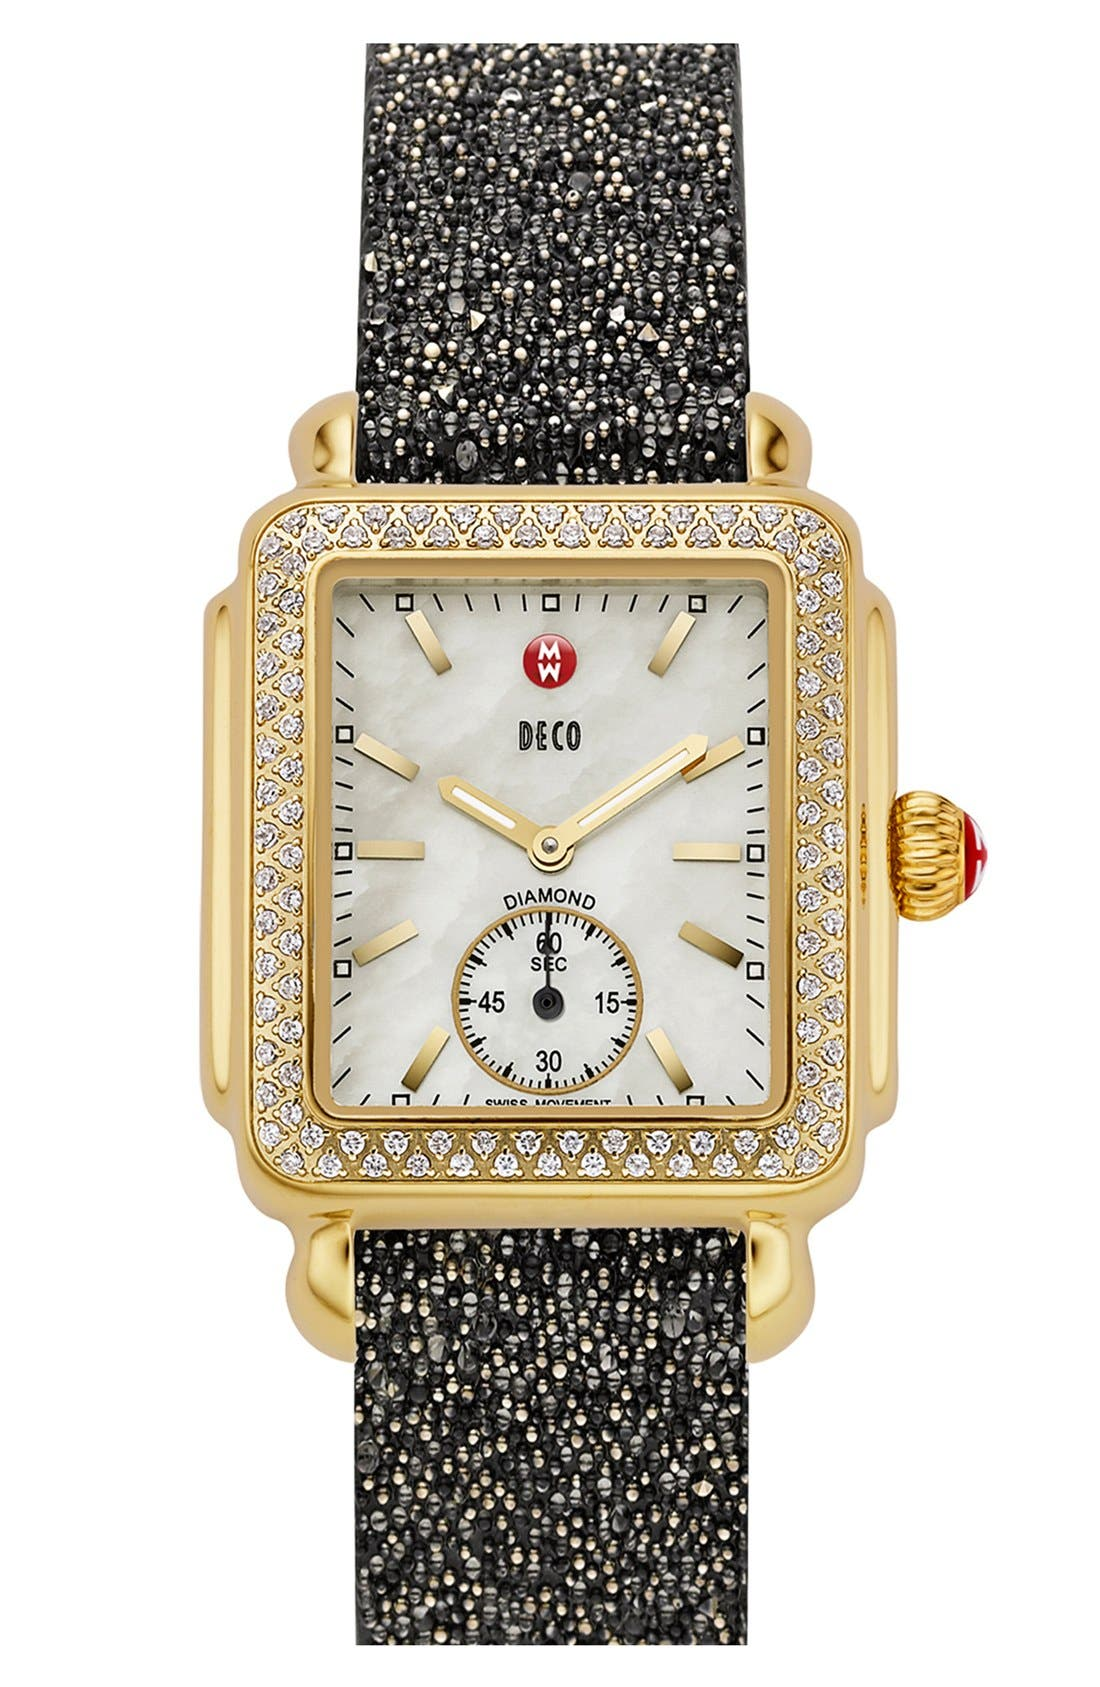 Deco 16 Diamond Gold Plated Watch Head, 29mm x 31mm,                             Alternate thumbnail 5, color,                             GOLD